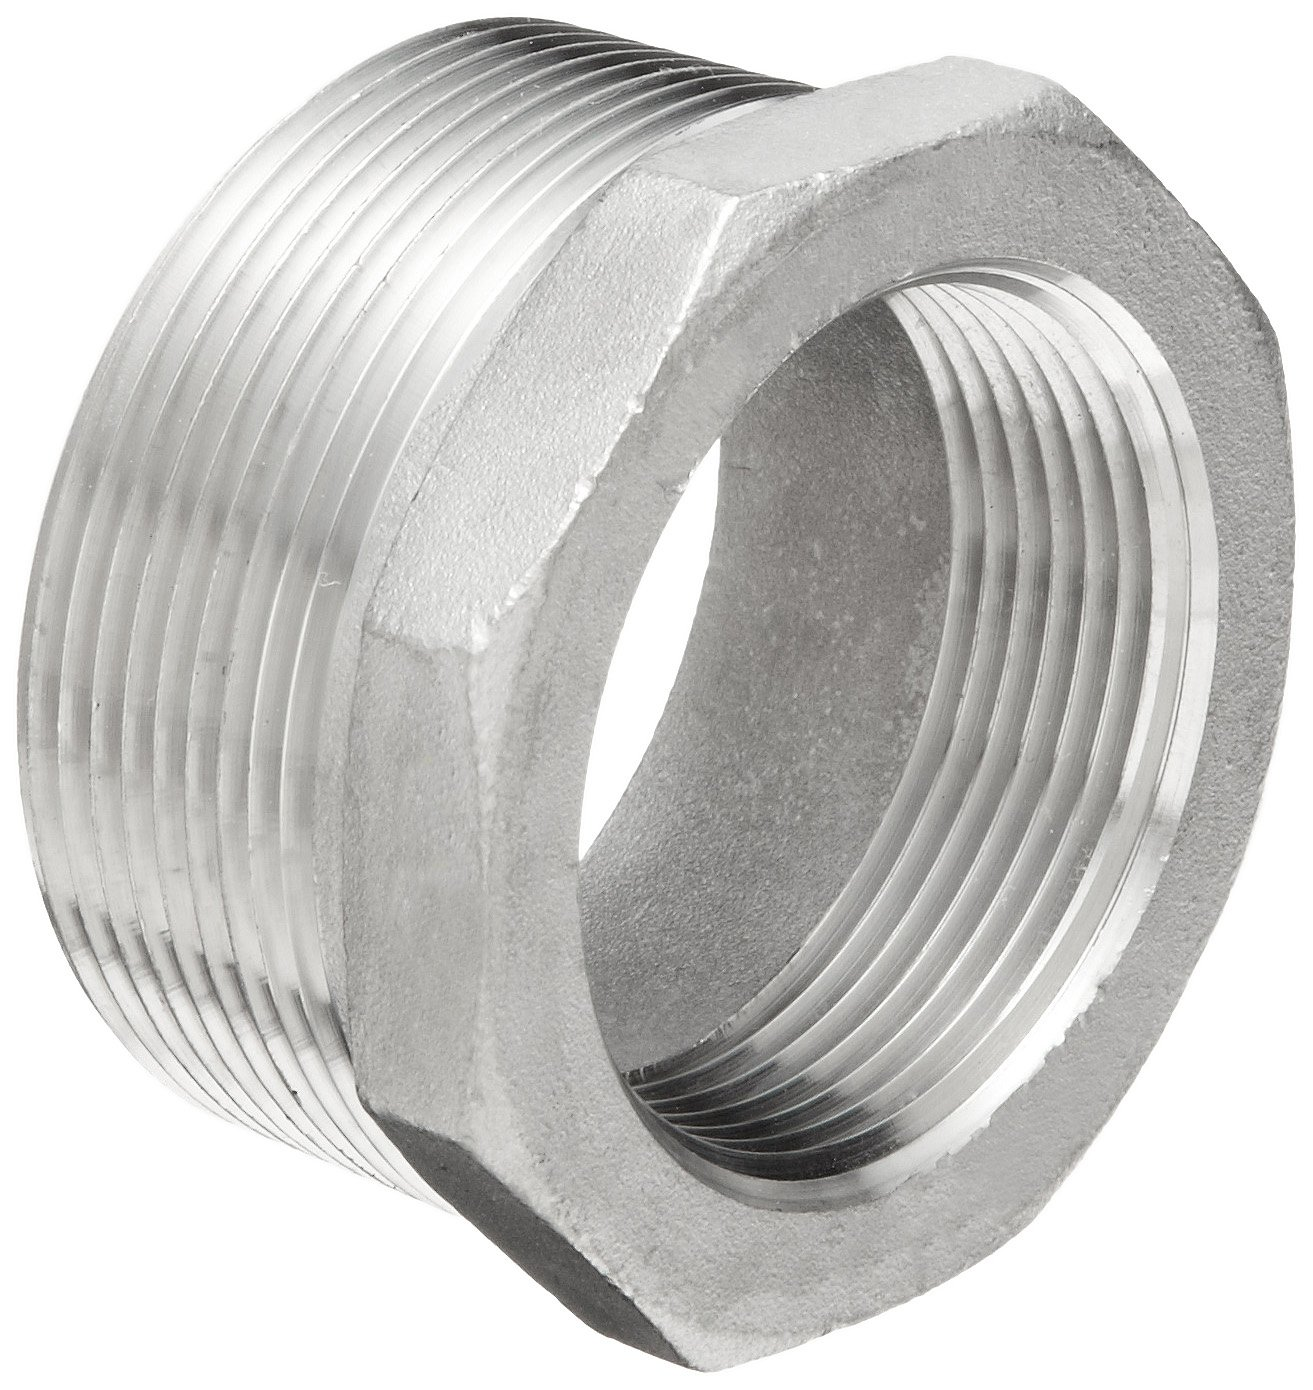 """4/"""" X 1-1//2/"""" HEX BUSHING 316 STAINLESS STEEL PIPE REDUCER FITTING REDUCING"""